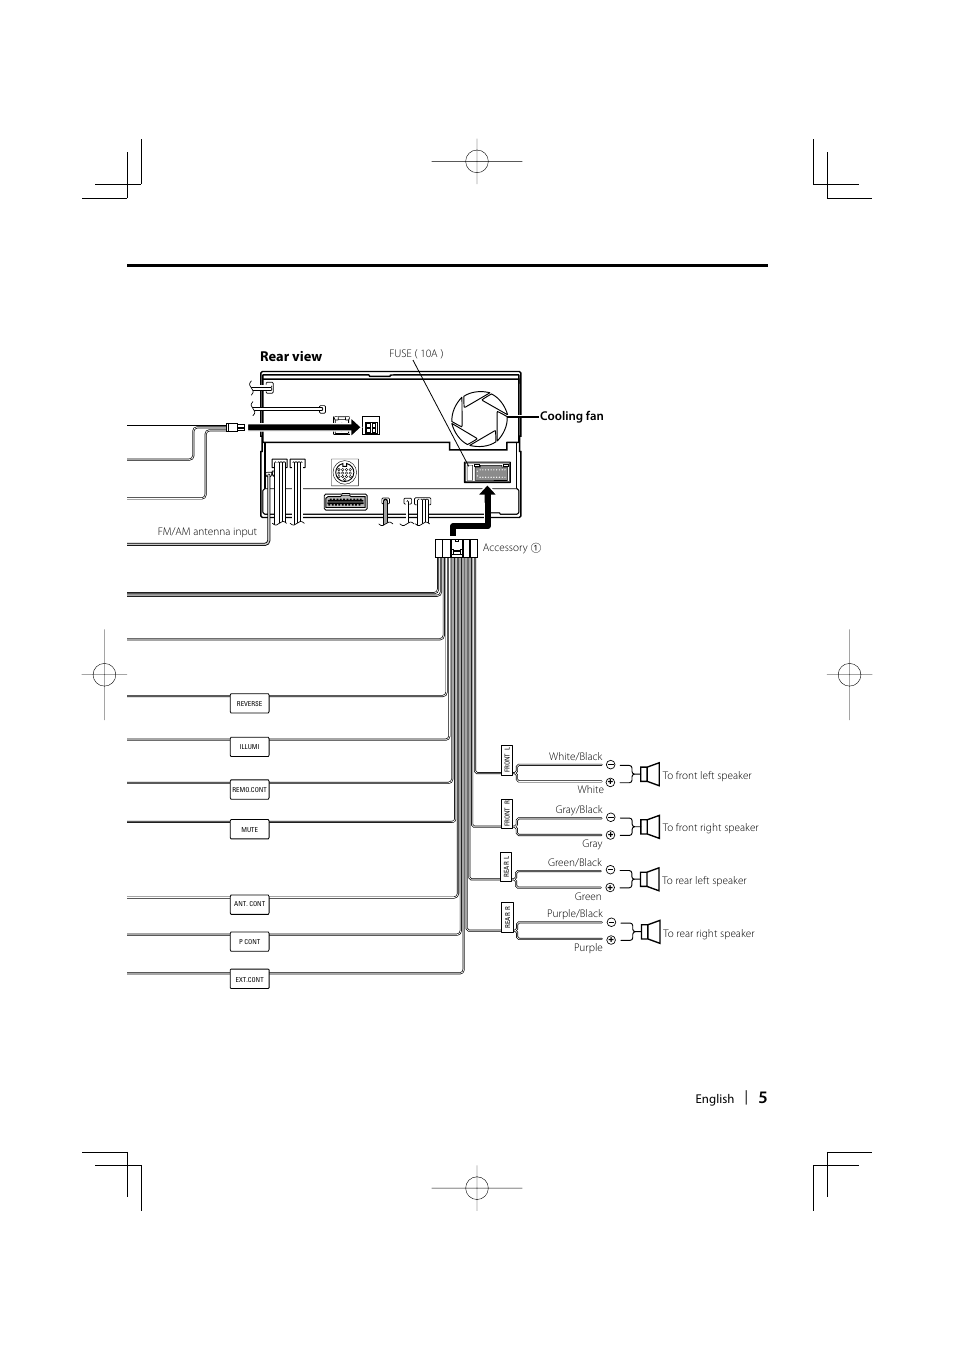 Kenwood Excelon Wiring Schematics Ddx7019 Diagram Manual Guide Rear View User Page 5 10 Rh Manualsdir Com Harness